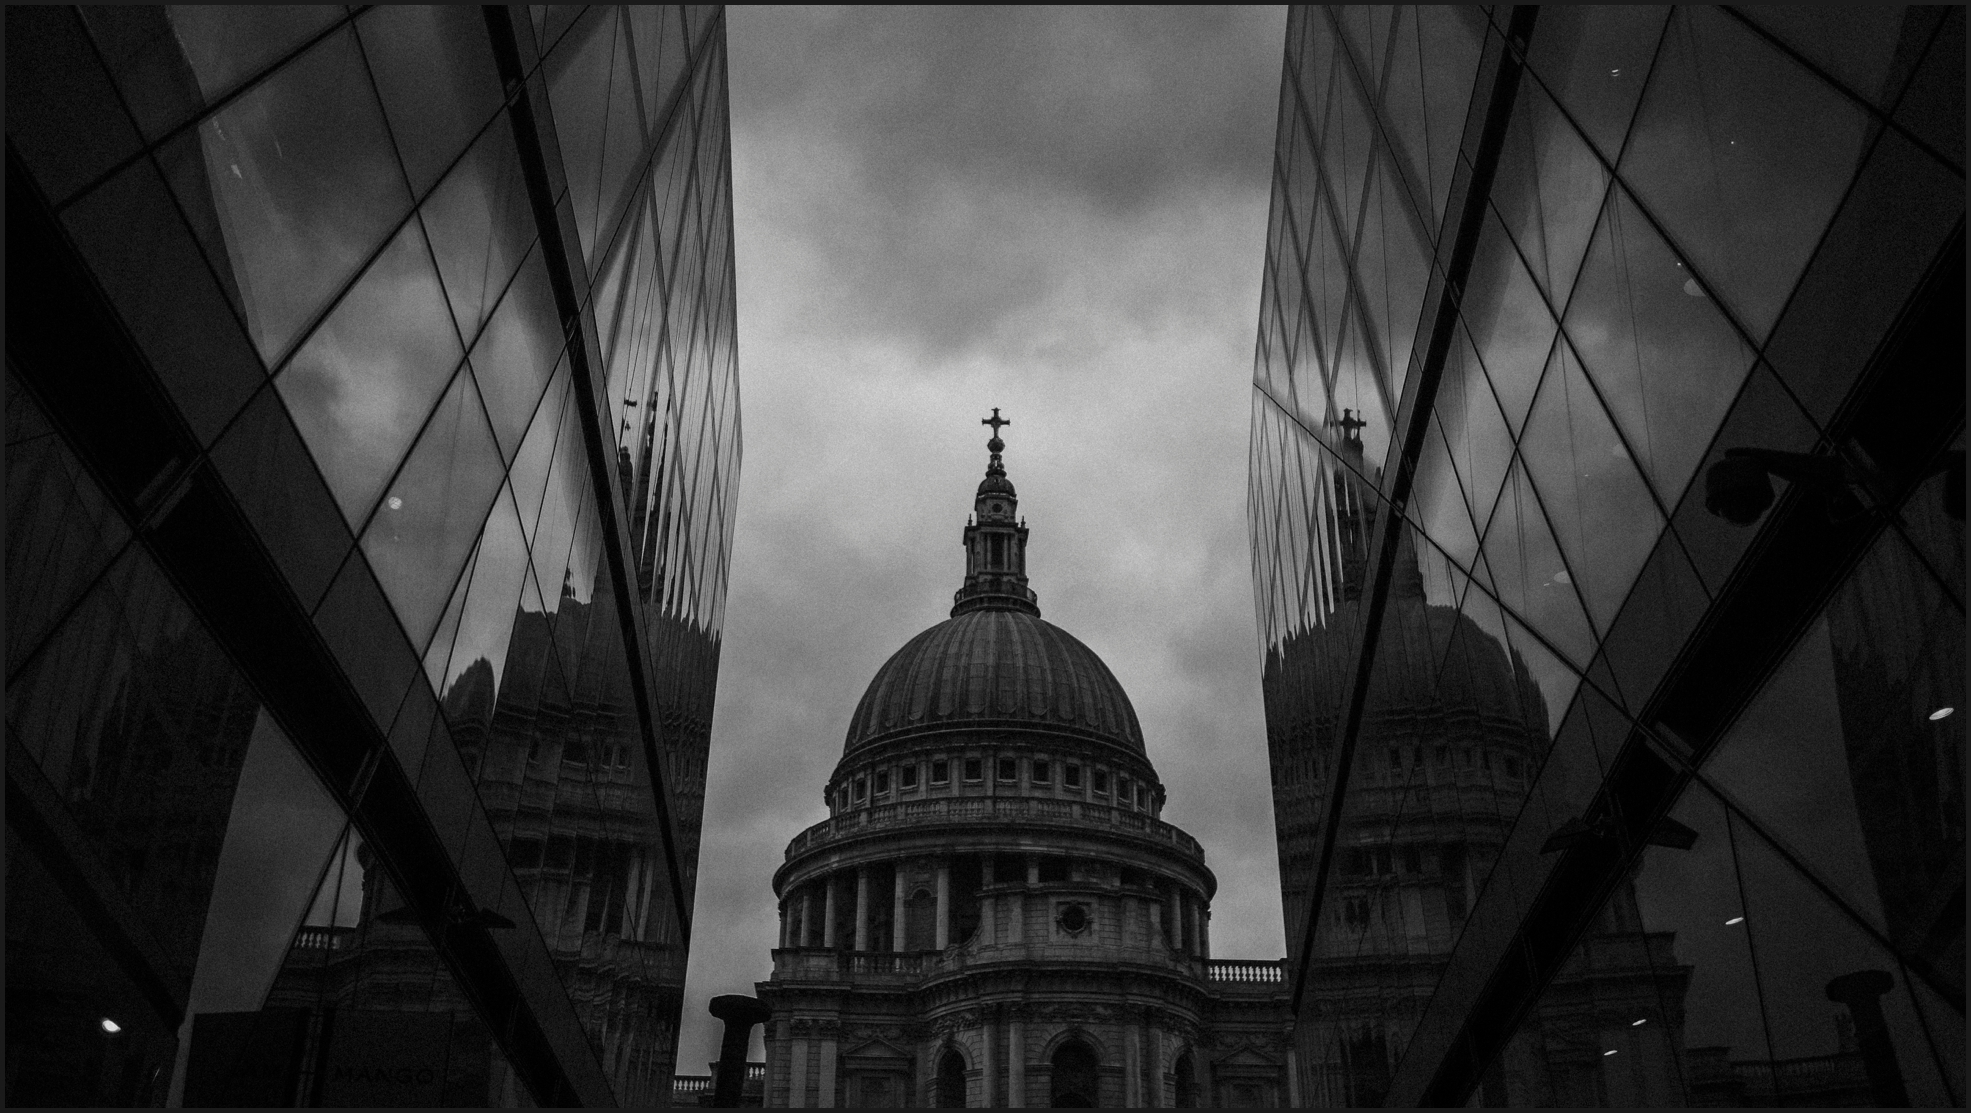 black and white, landscape, london, st. paul's cathedral